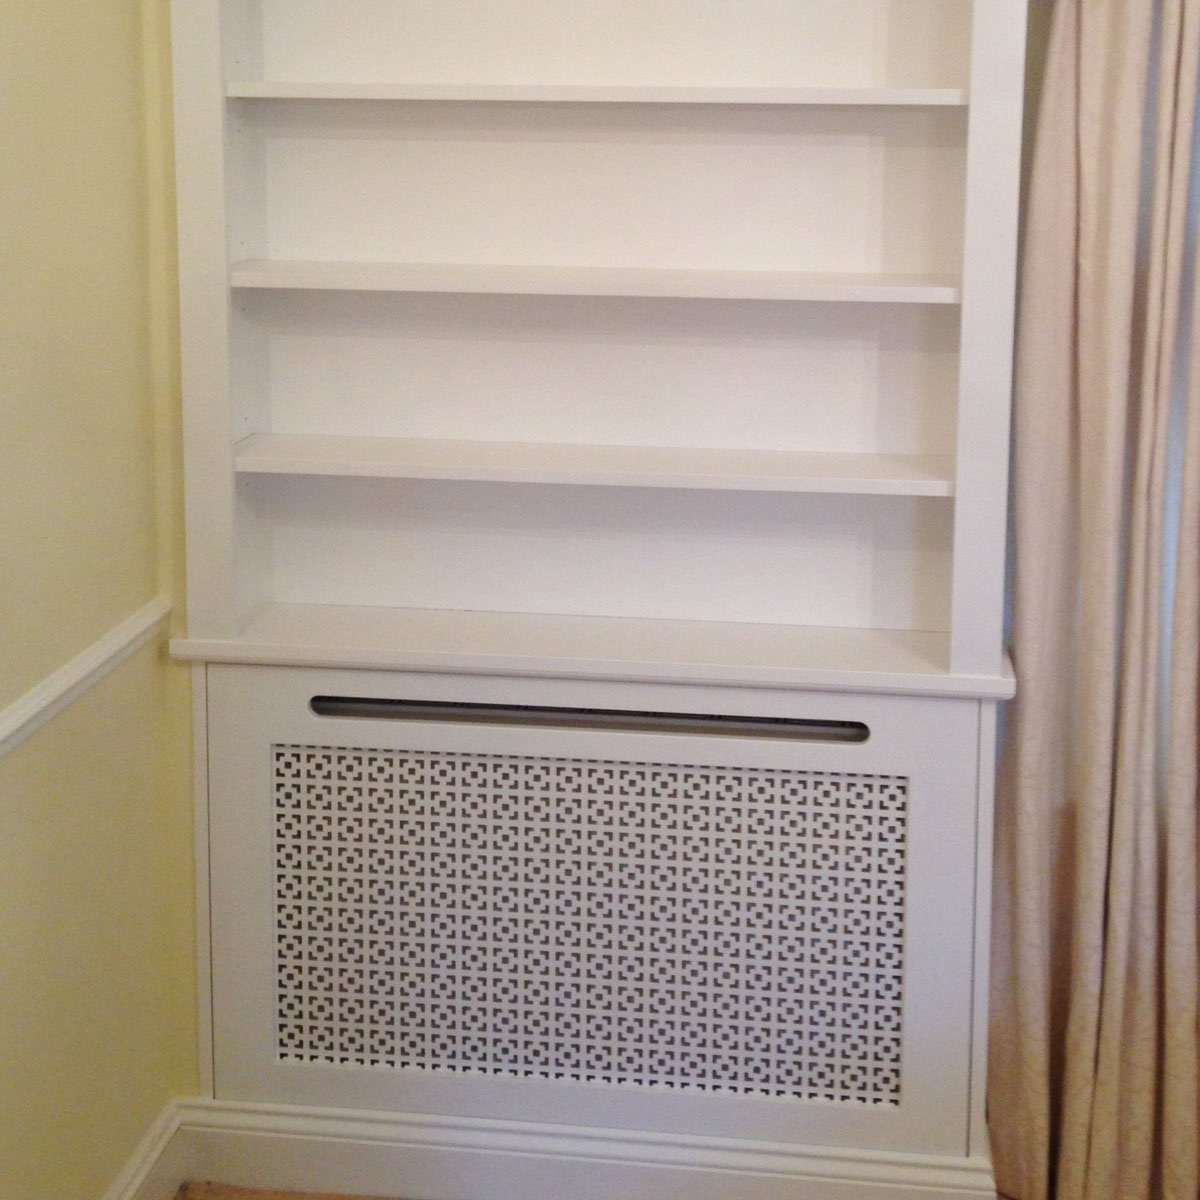 Well Liked Radiator Covers With Bookshelves Inside Hide Ugly Radiators With These 12 Clever Cover Ideas (View 7 of 15)